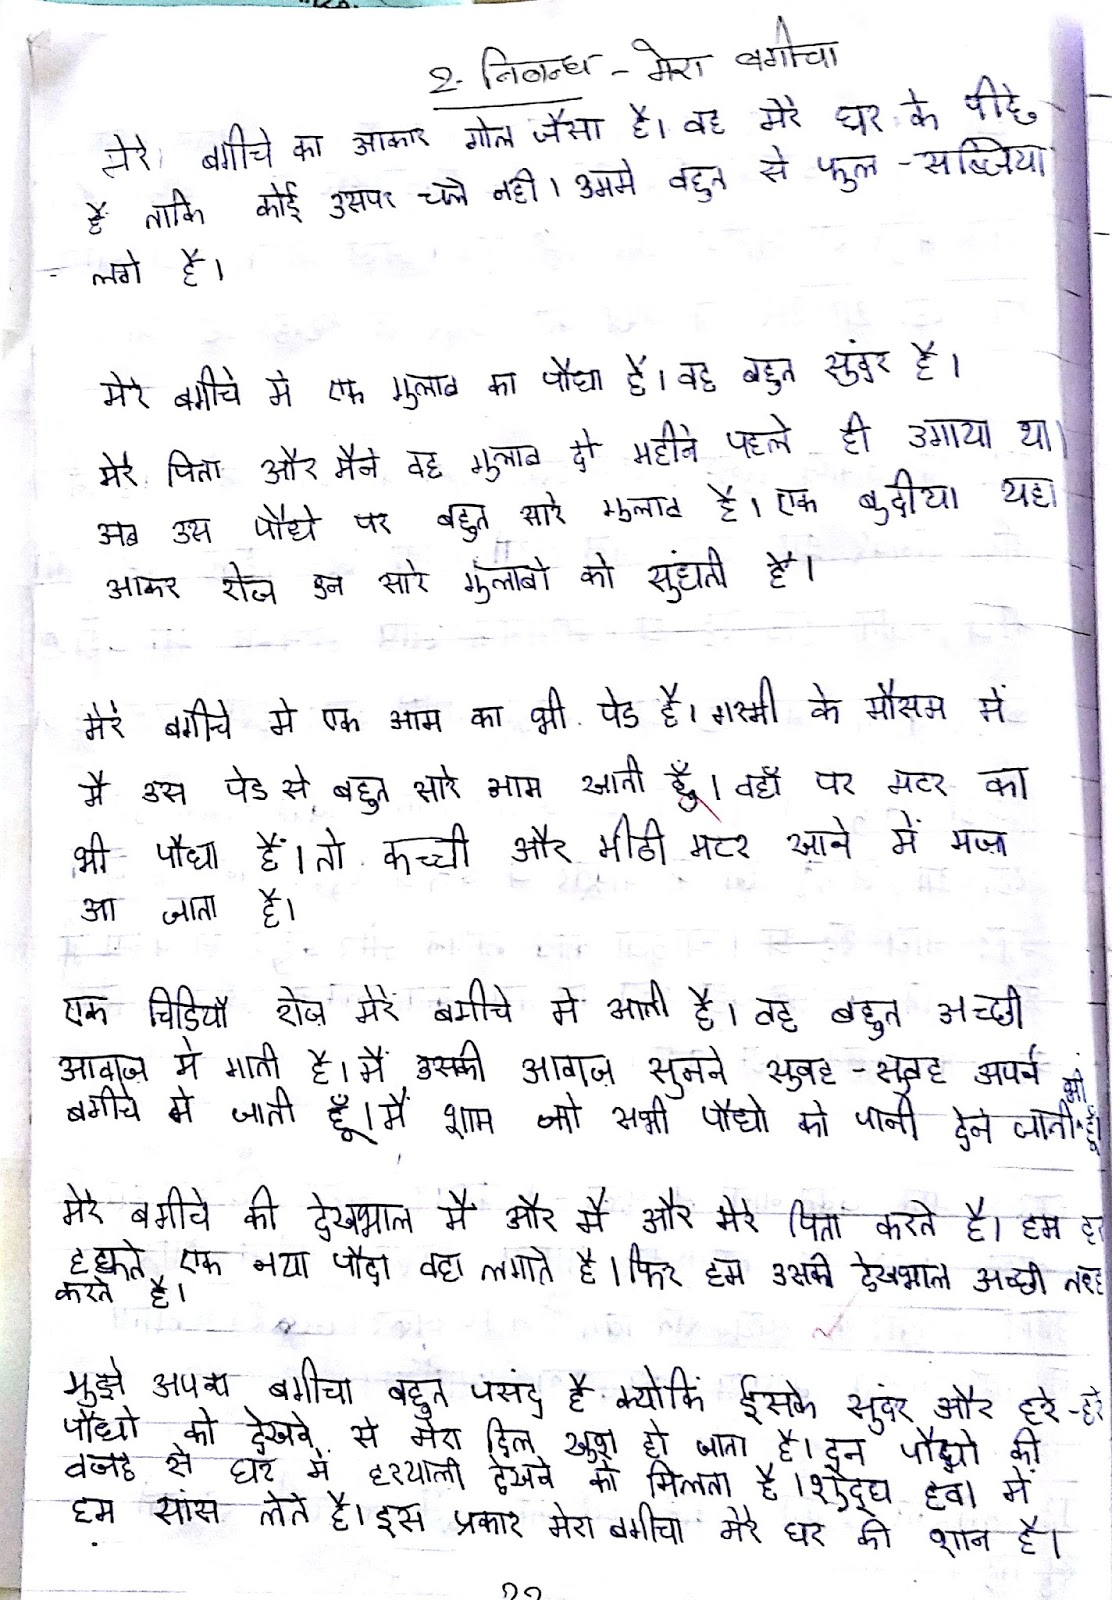 Step Essay Writing  The Lodges Of Colorado Springs  Hindi Essay  My Favourite Leader Mahatma Gandhi Essay Pinterest Hindi Essay On Jaha  Chaha Waha Raha Complete Hindi Examples Of An Essay Paper also Interesting Essay Topics For High School Students  How To Write A Thesis For A Narrative Essay